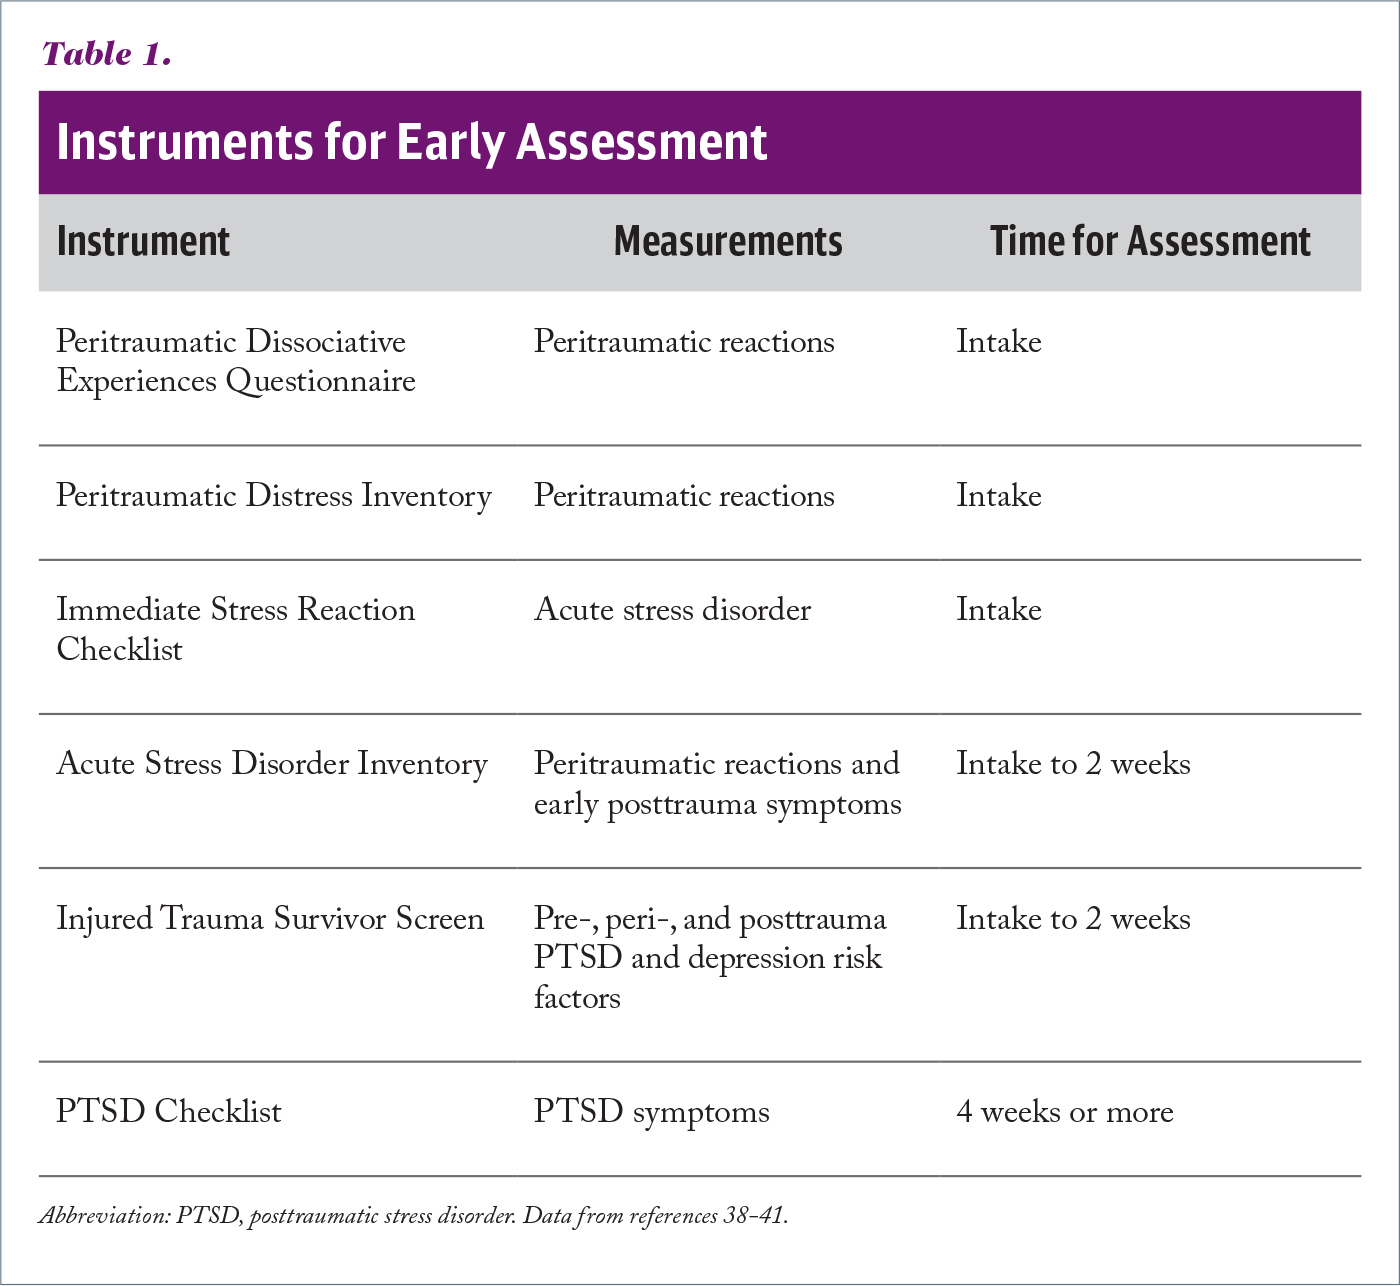 Instruments for Early Assessment